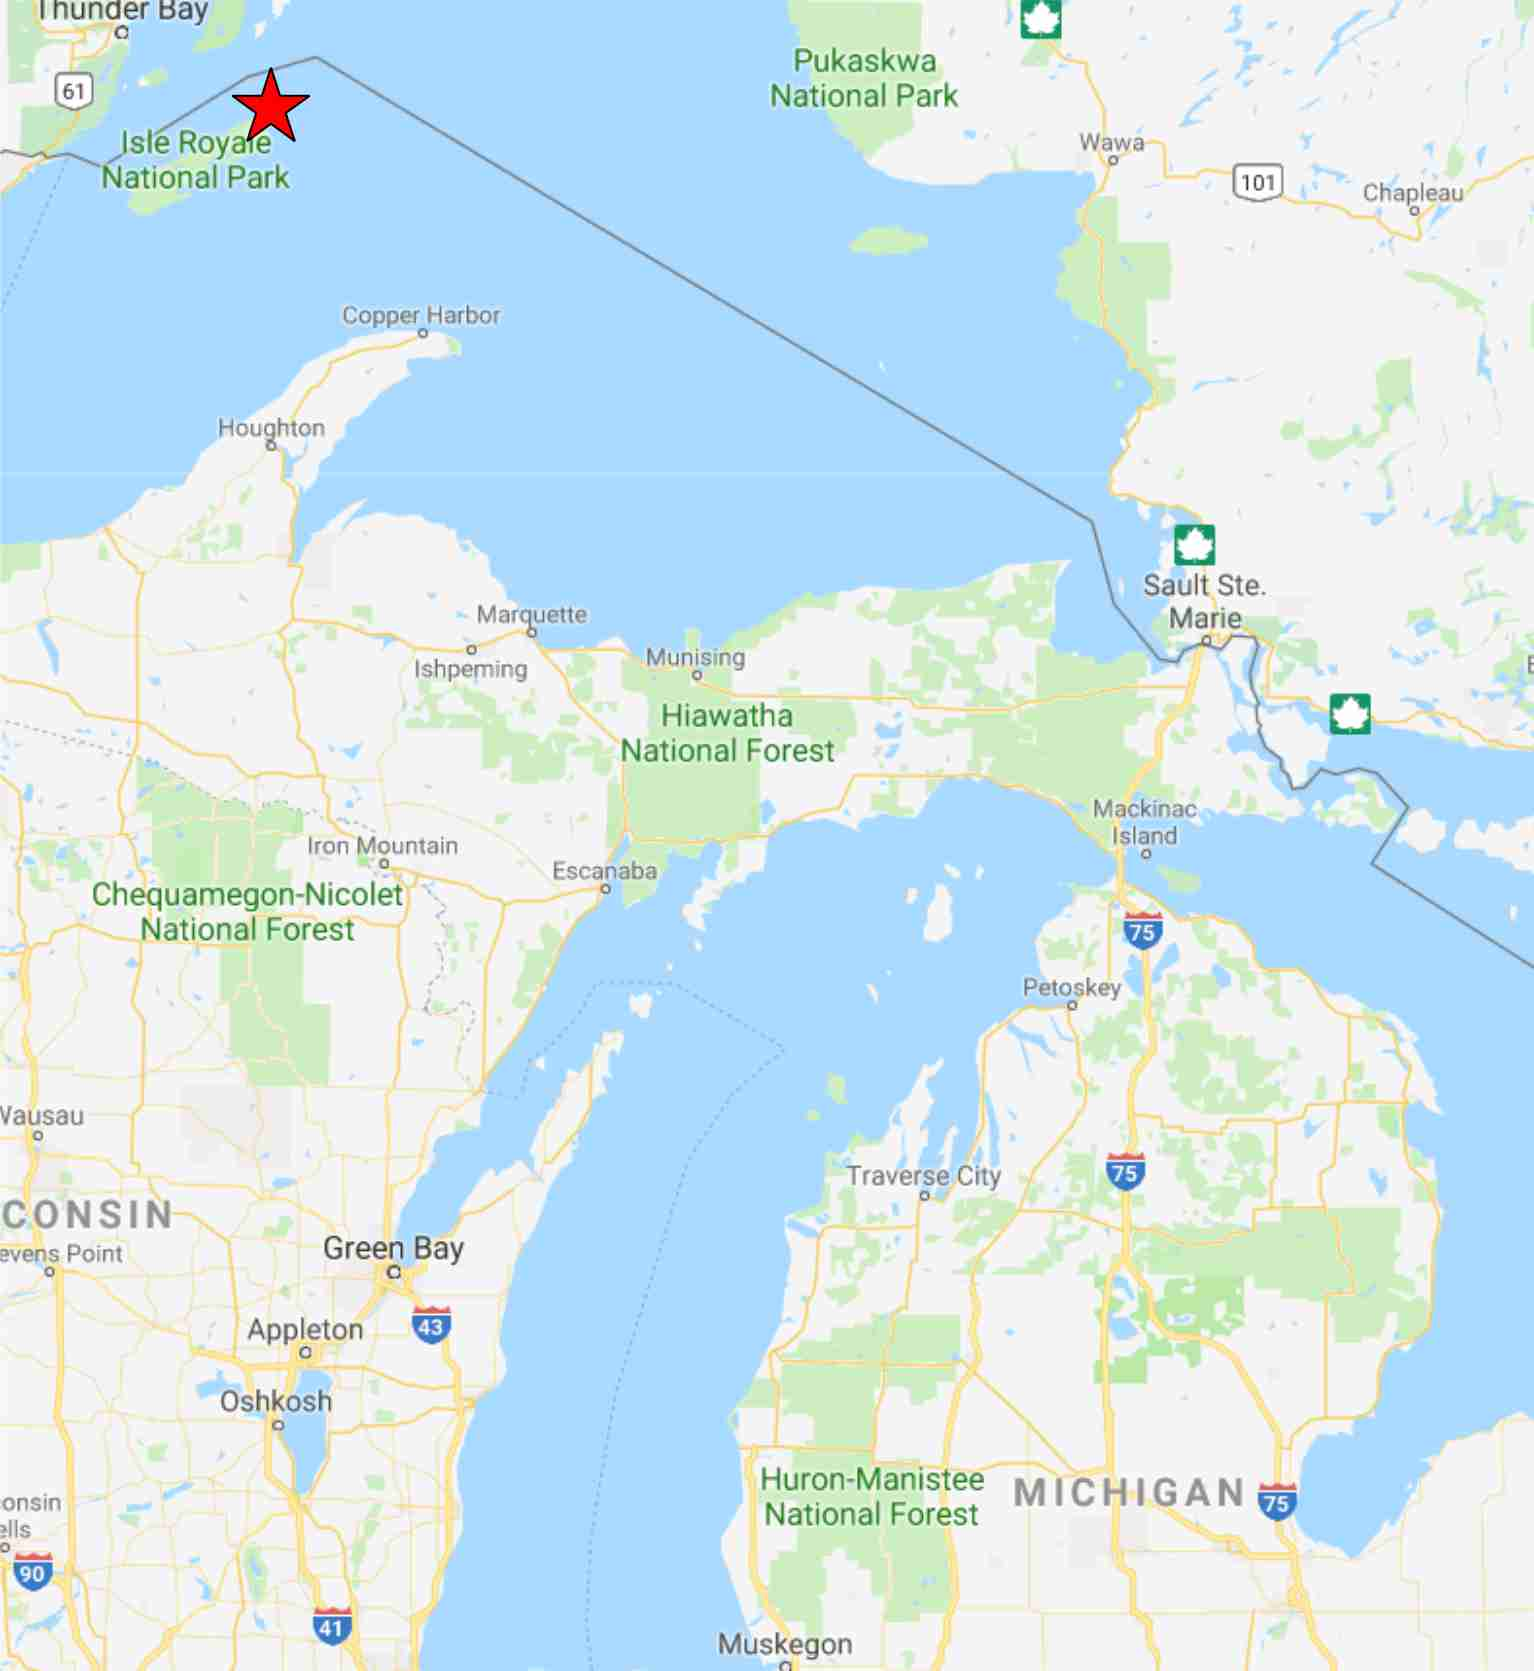 Map Location of Isle Royale National Park